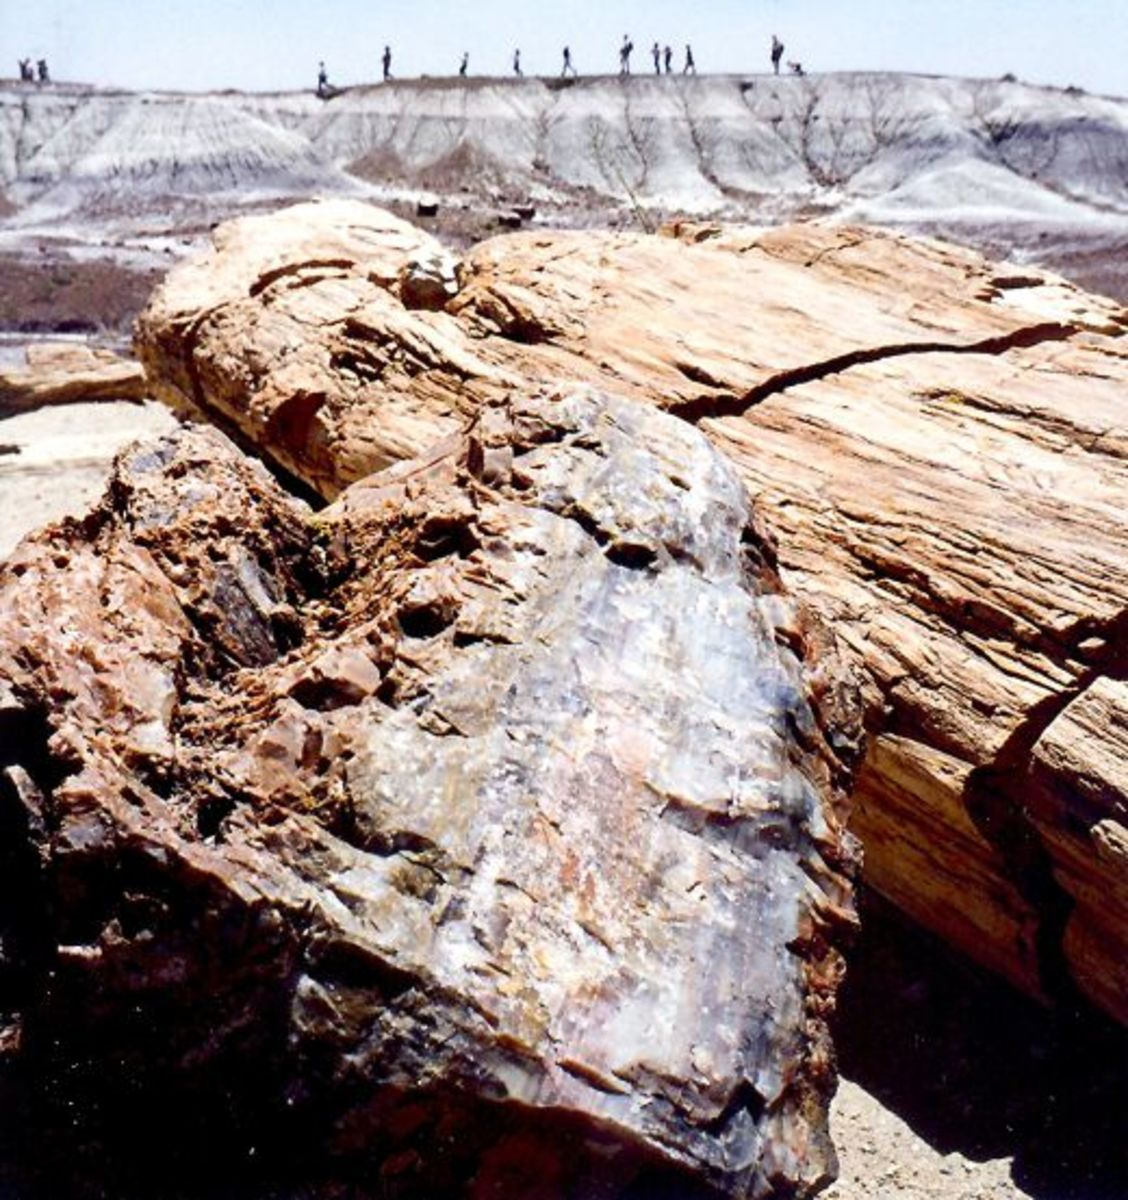 People looking down upon the Petrified Forest National Park